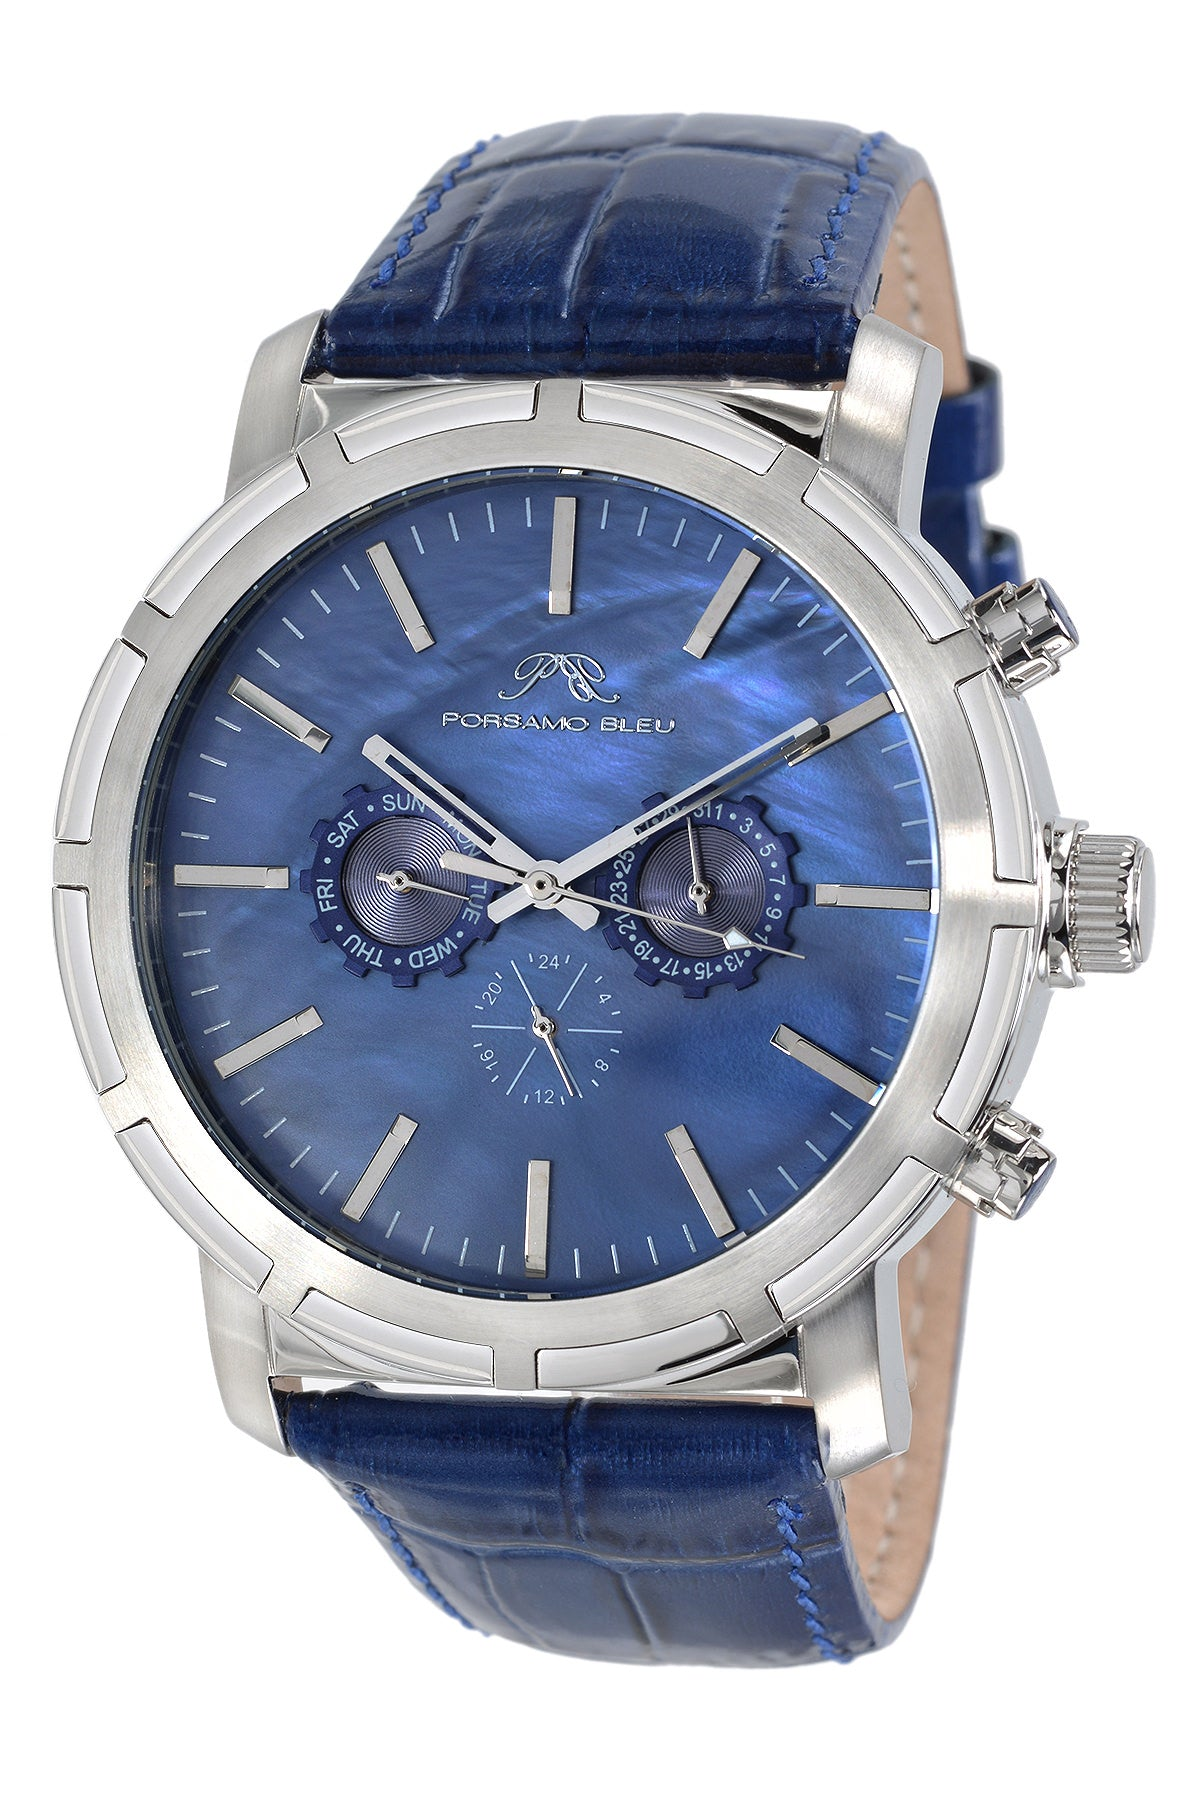 Porsamo Bleu NYC luxury men's watch, genuine leather band, silver, blue 056ANYL